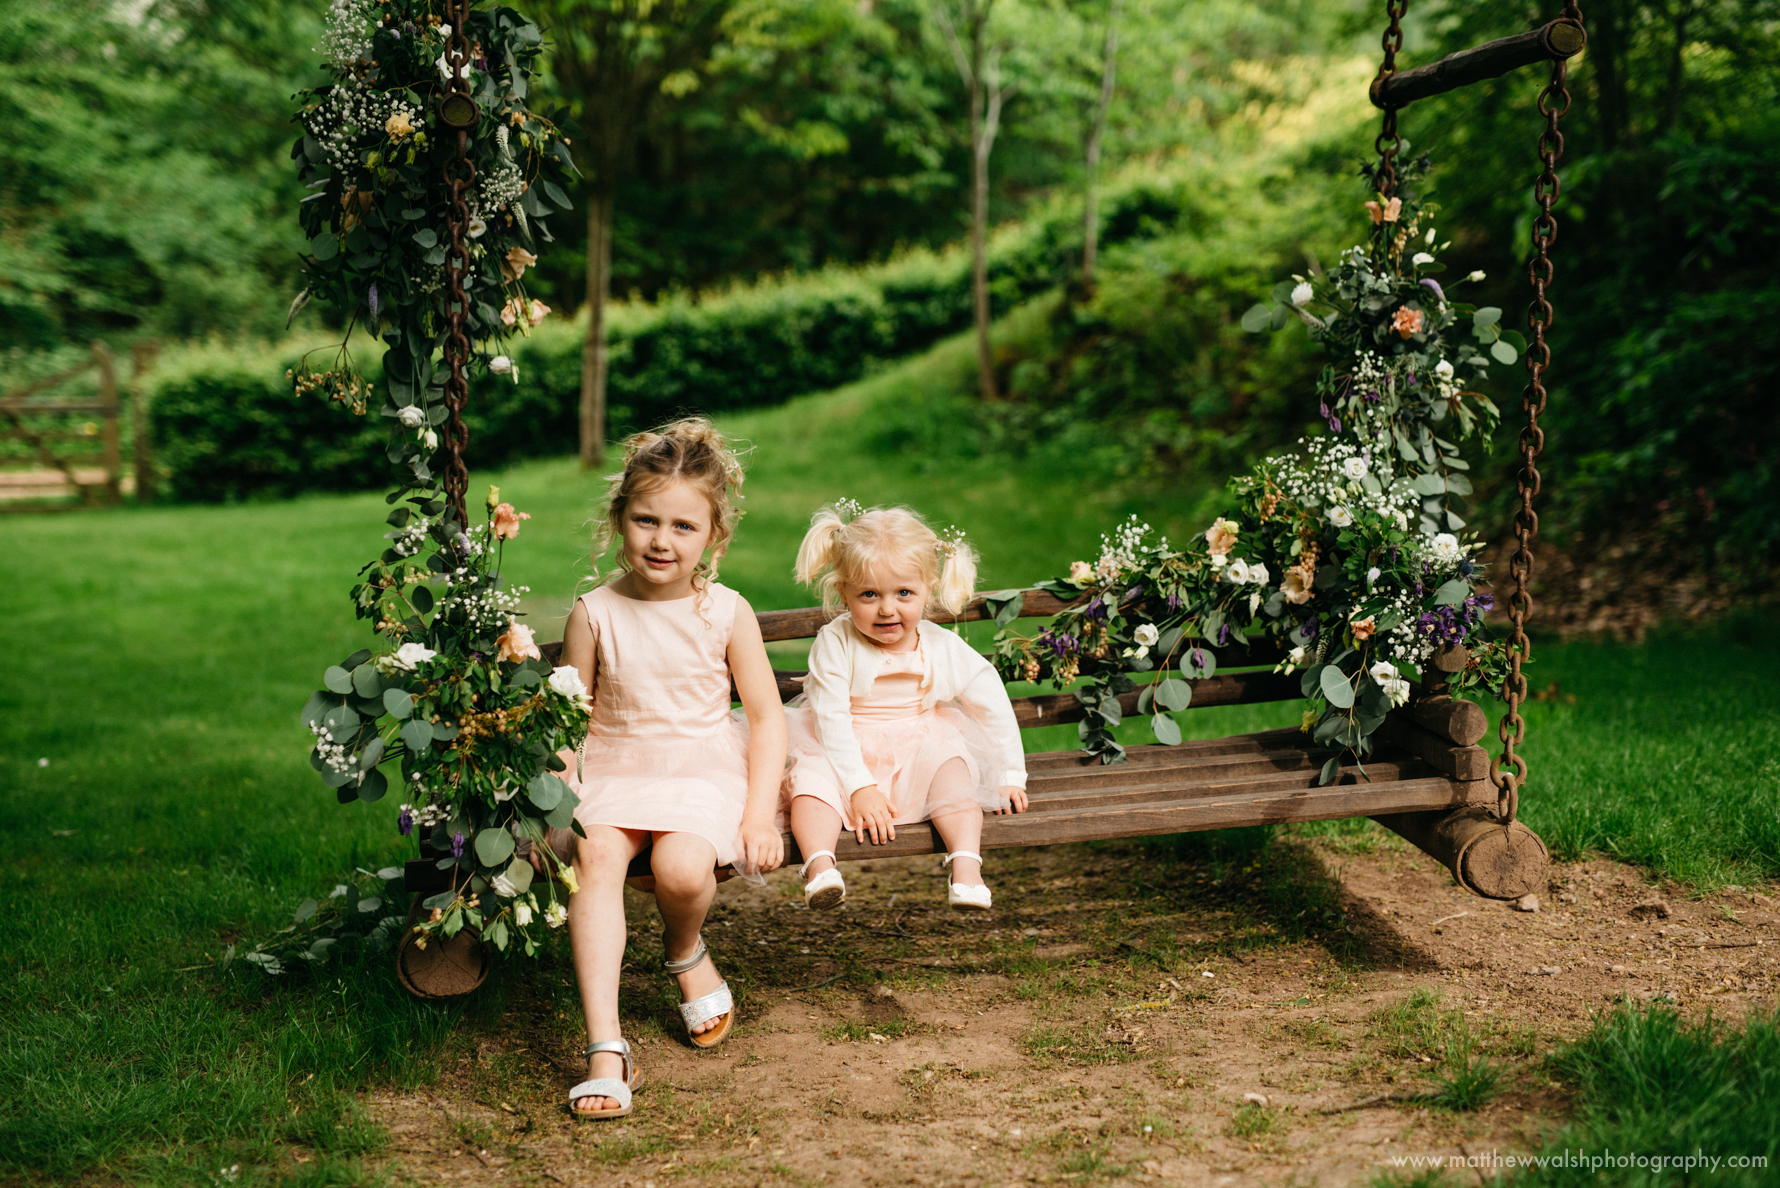 Little flower girls having fun on a swing, as a beautiful early evening light sets in